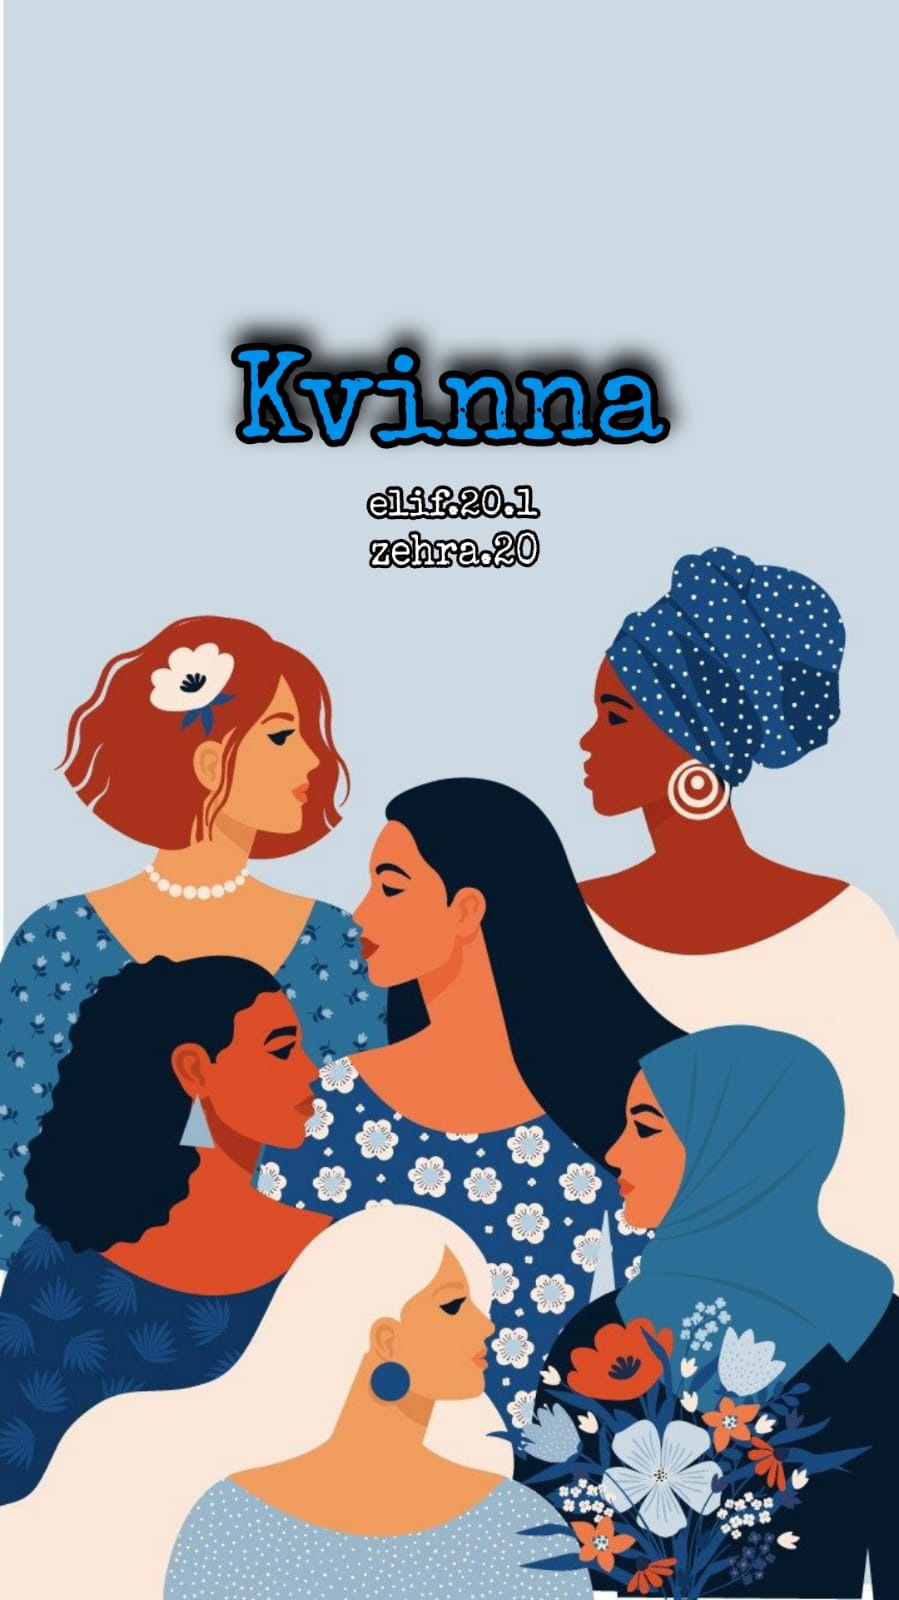 COLLABORATİVE WORK İN MARCH E BOOK by The Value of Women and Gender Equality in the 21 st Century eTwinning Project - Illustrated by March ayı Collaborative Studies book - Ourboox.com